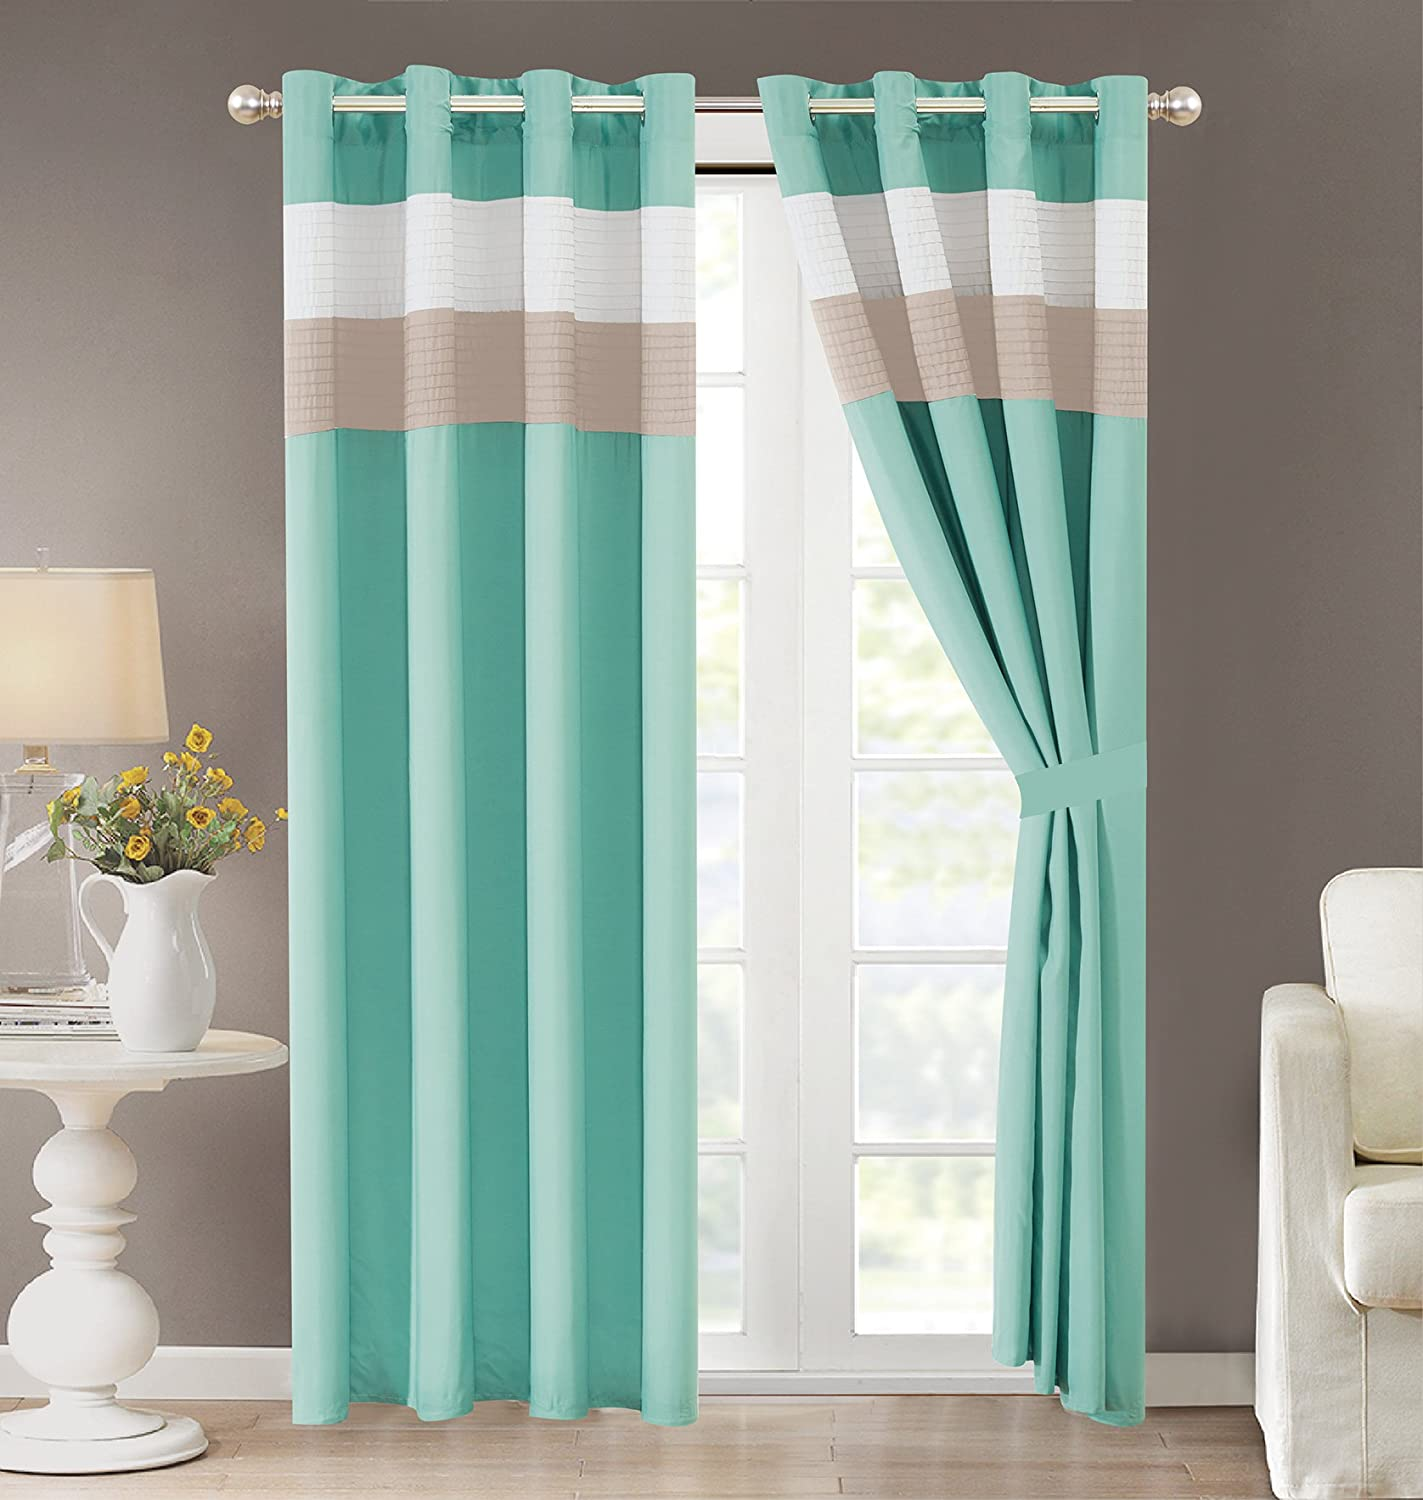 Grand Linen 4 Piece Regatta Turquoise Blue/White/Grey Pin Tuck Stripe Curtain Set with Attached Valance and Sheers